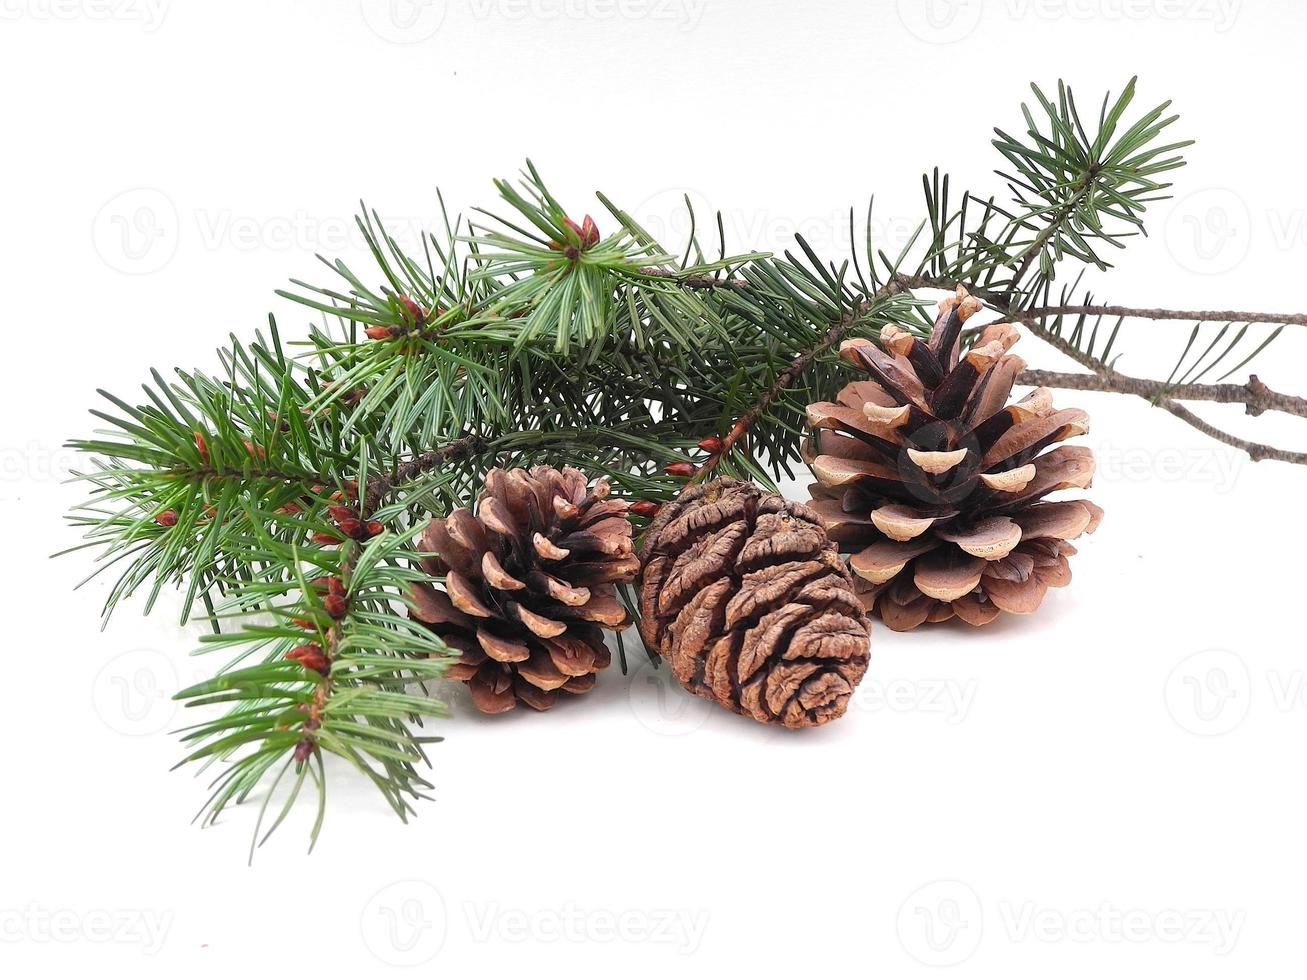 Conifer Cones and Evergreen Branches photo